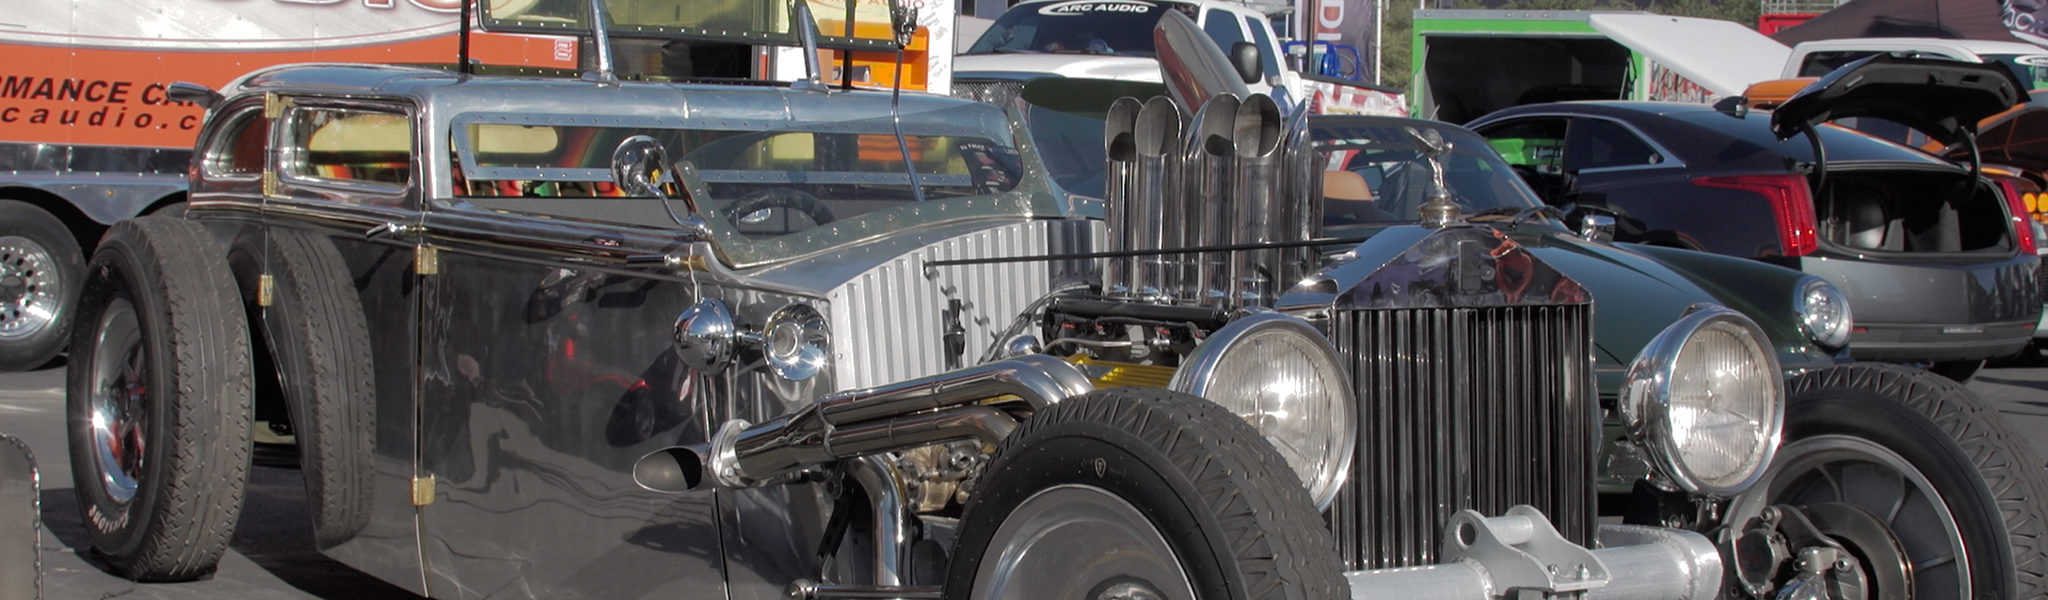 The Sema Show Rat Rod Build off with Street toys